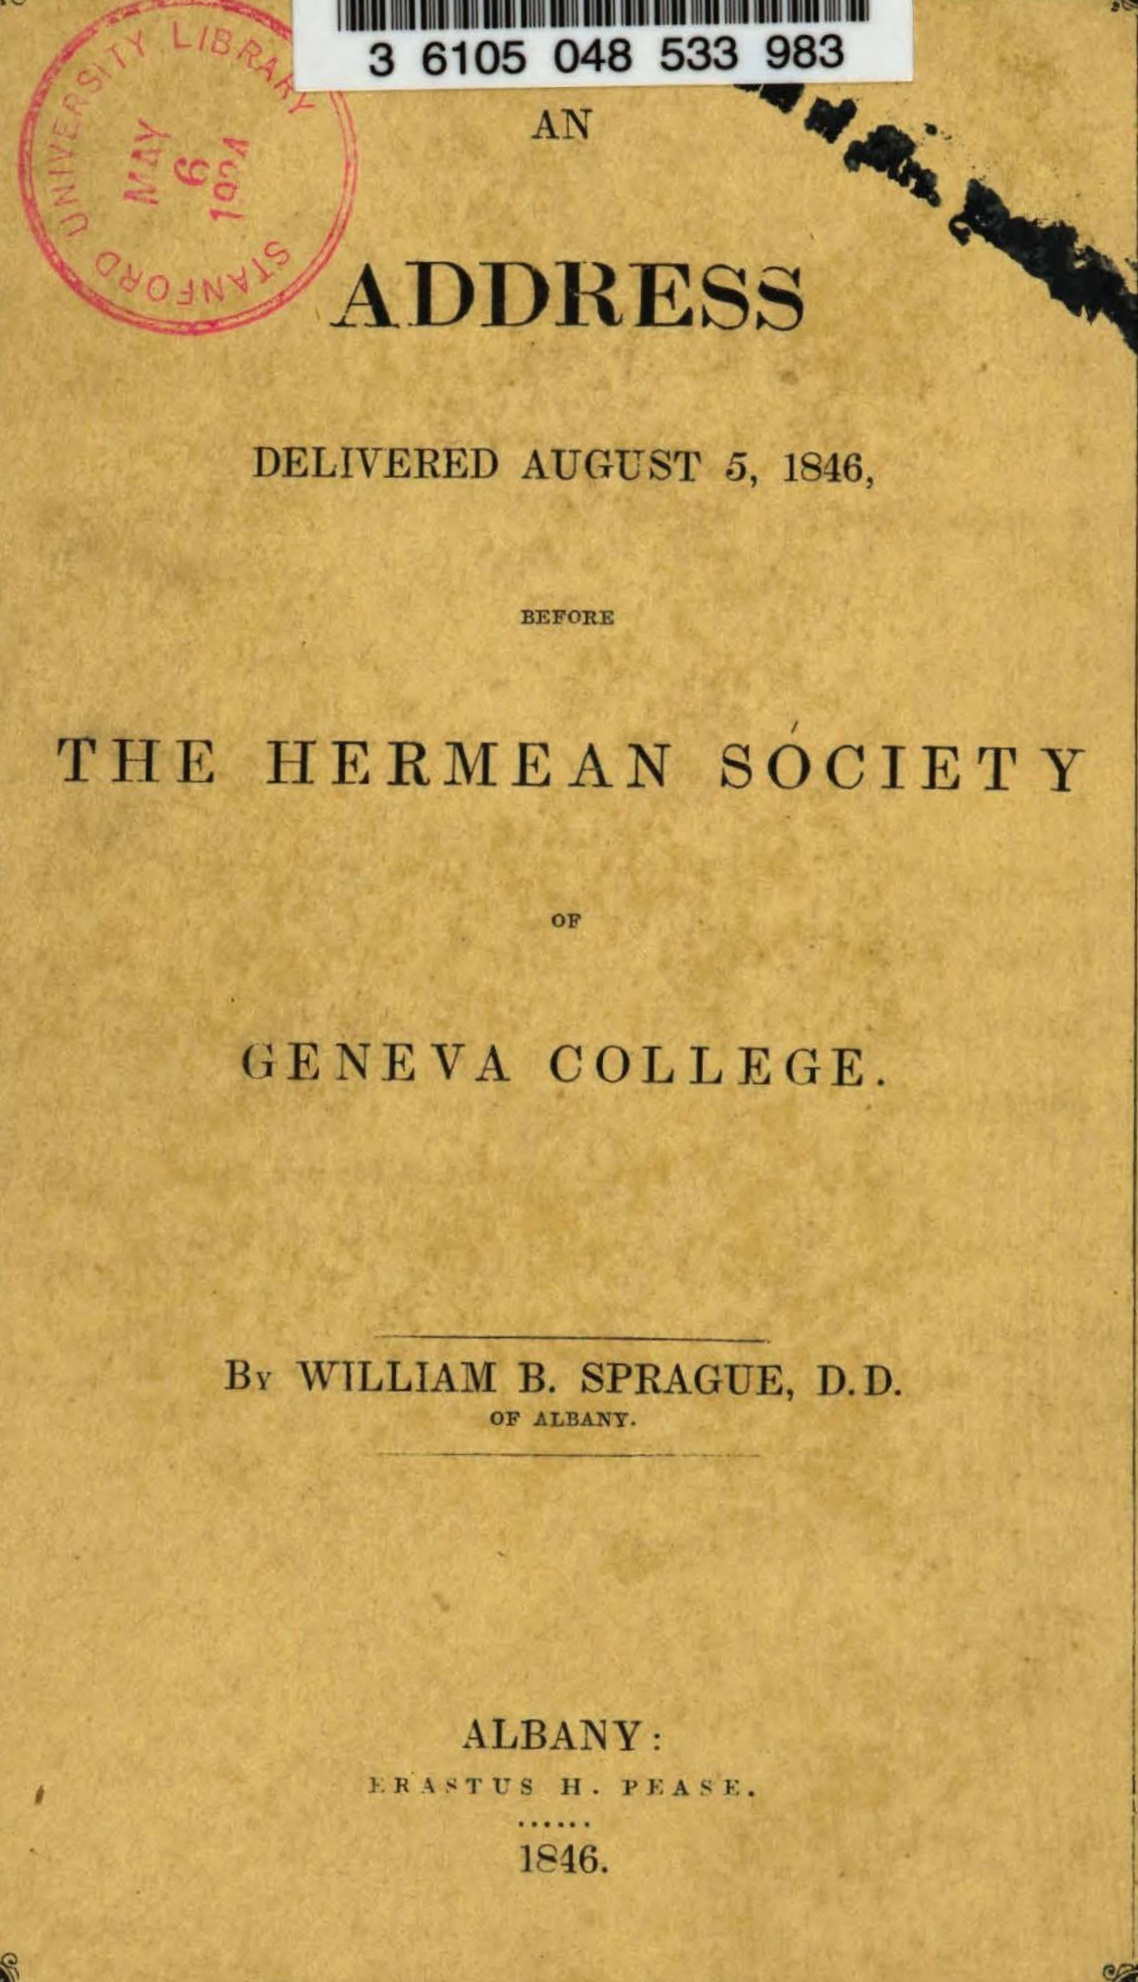 Sprague, William Buell, An Address Delivered Before the Hermean Society of Geneva College Title Page.jpg